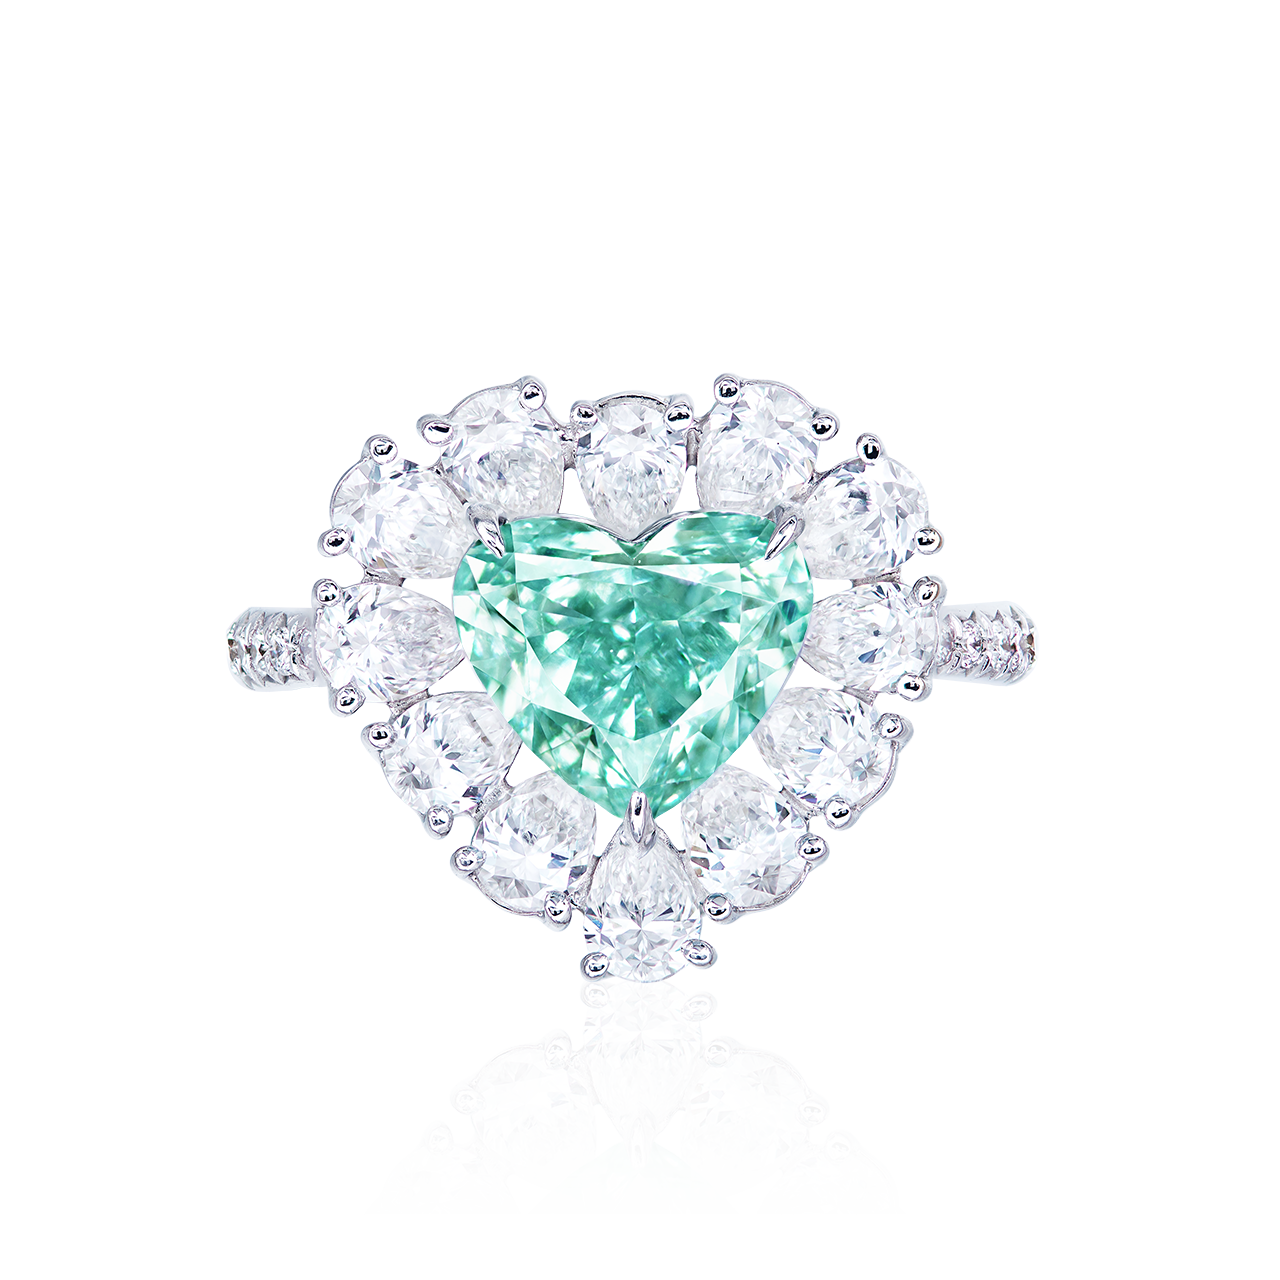 GIA 2.16克拉 濃彩藍綠鑽鑽戒